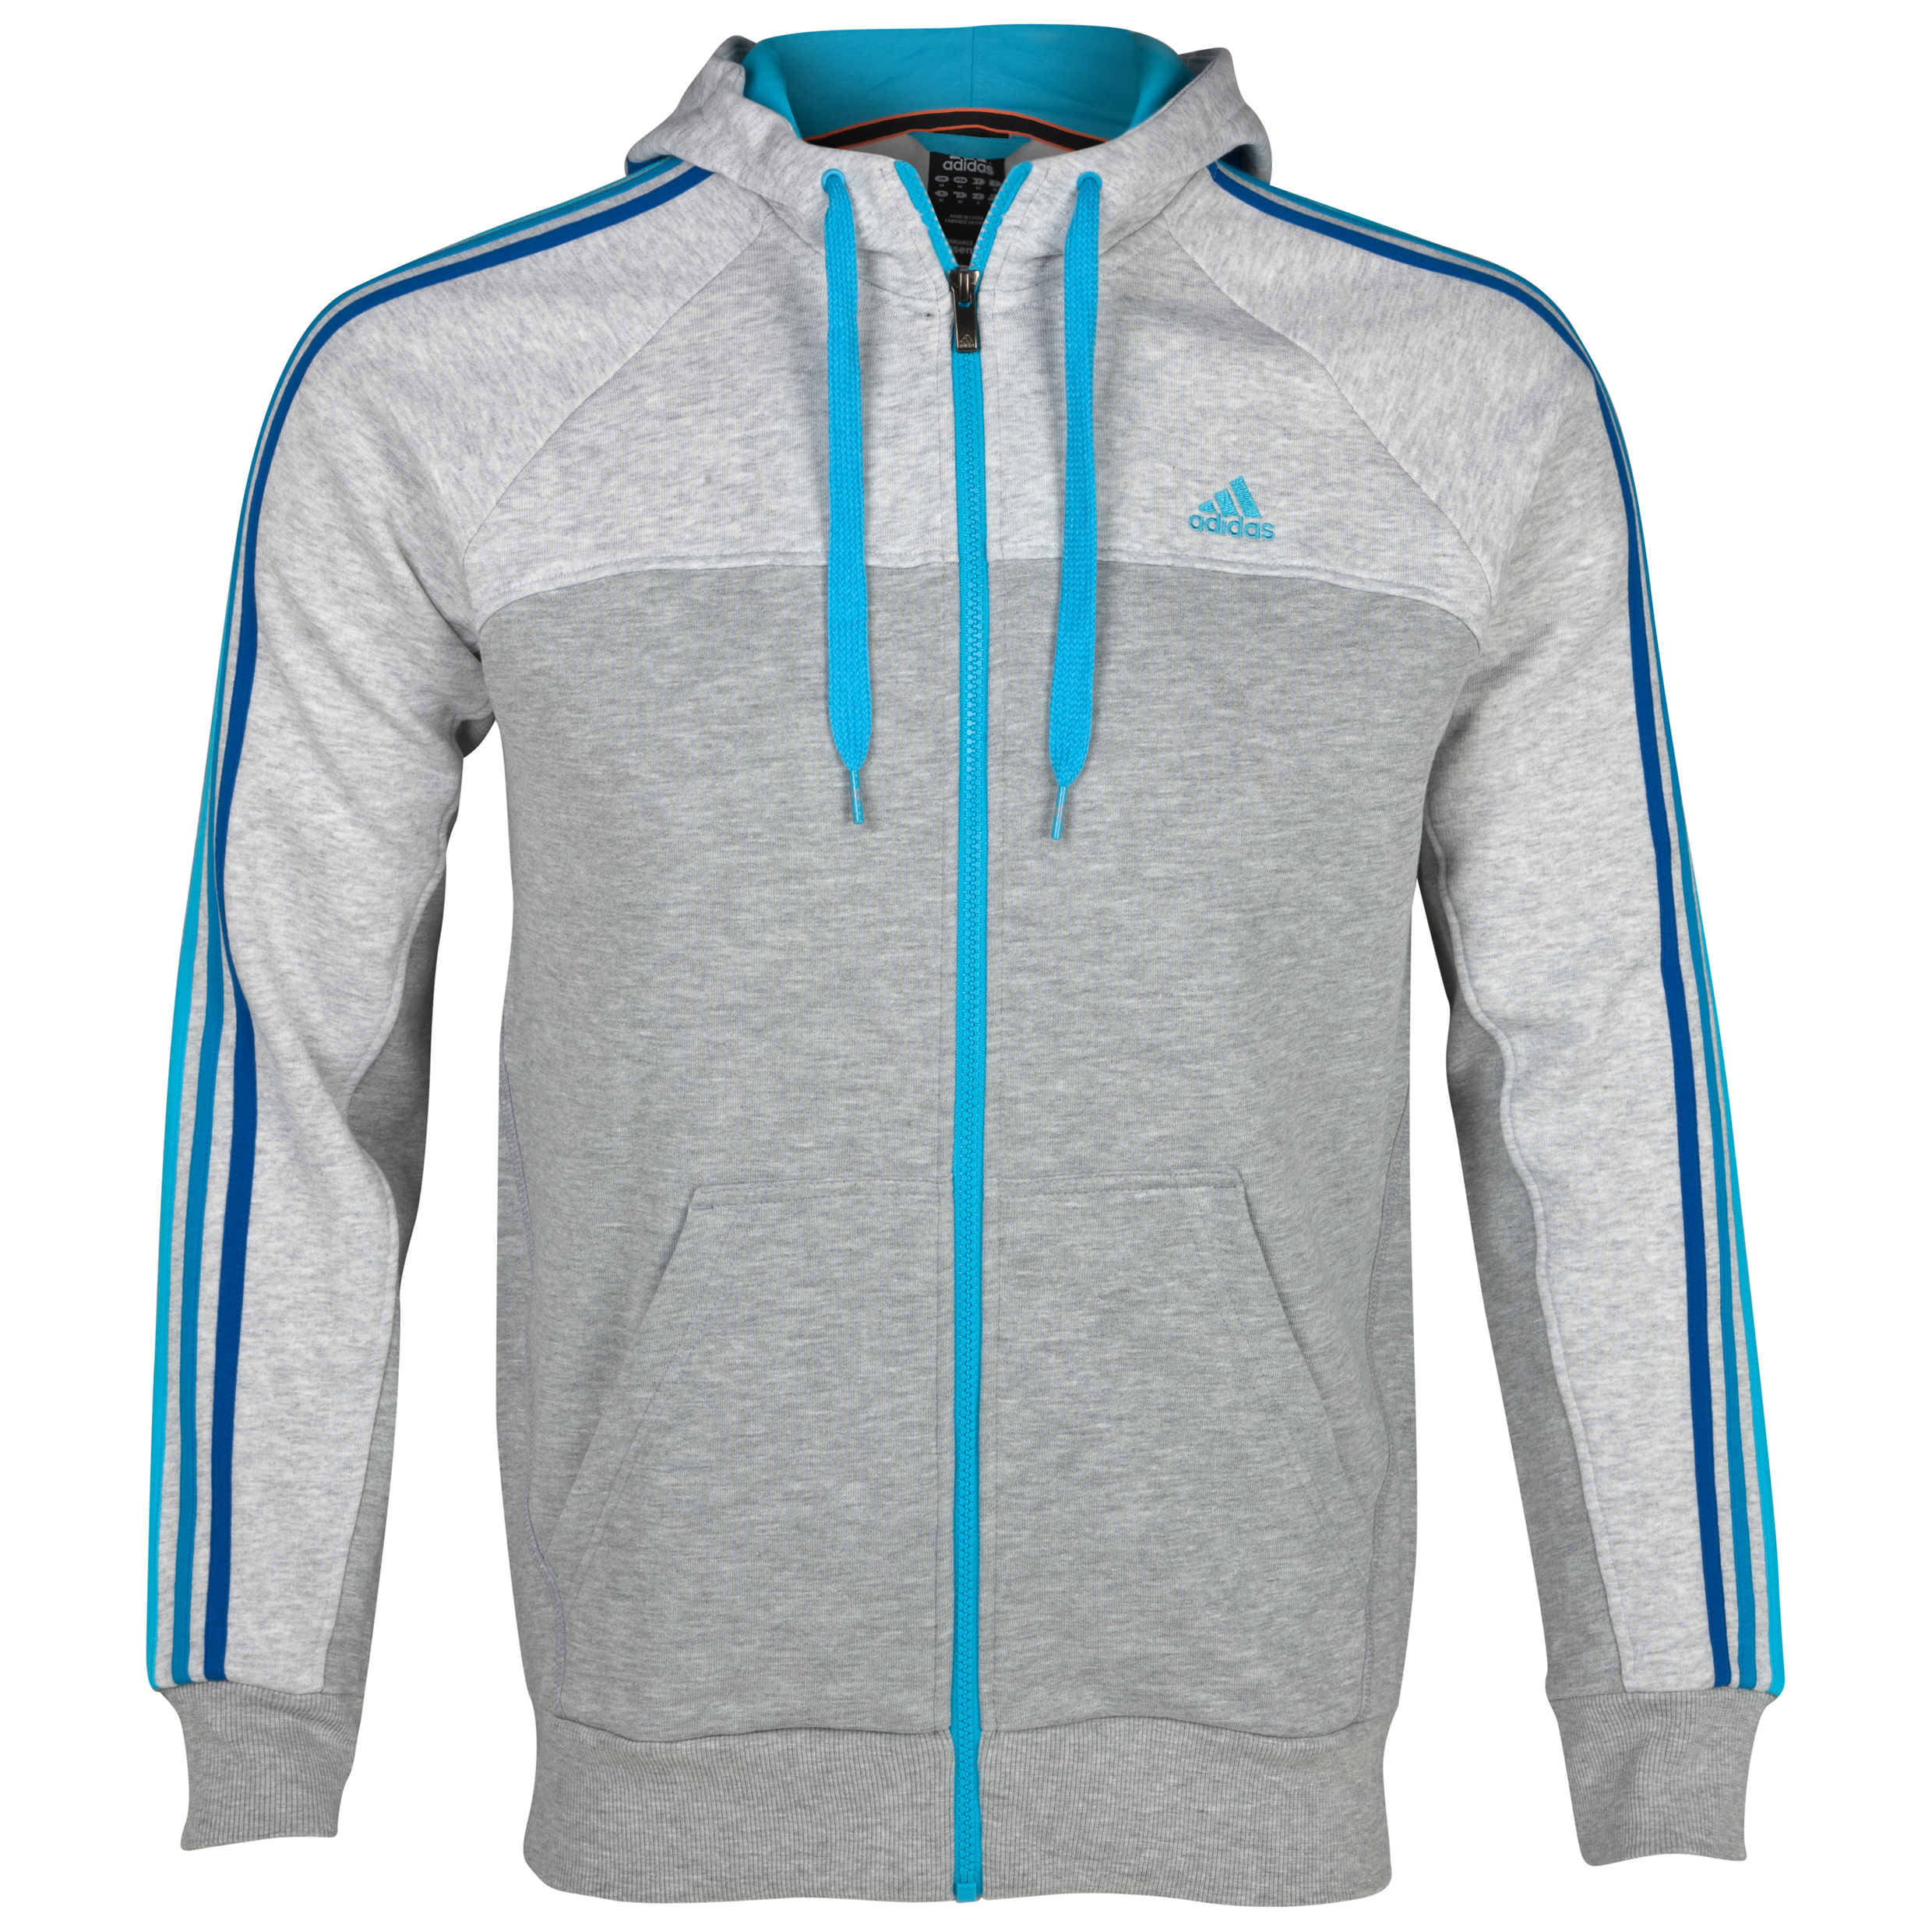 Adidas Essentials 3 Stripe Full Zip Hooded Top - Medium Grey Heather/Light Grey Heather